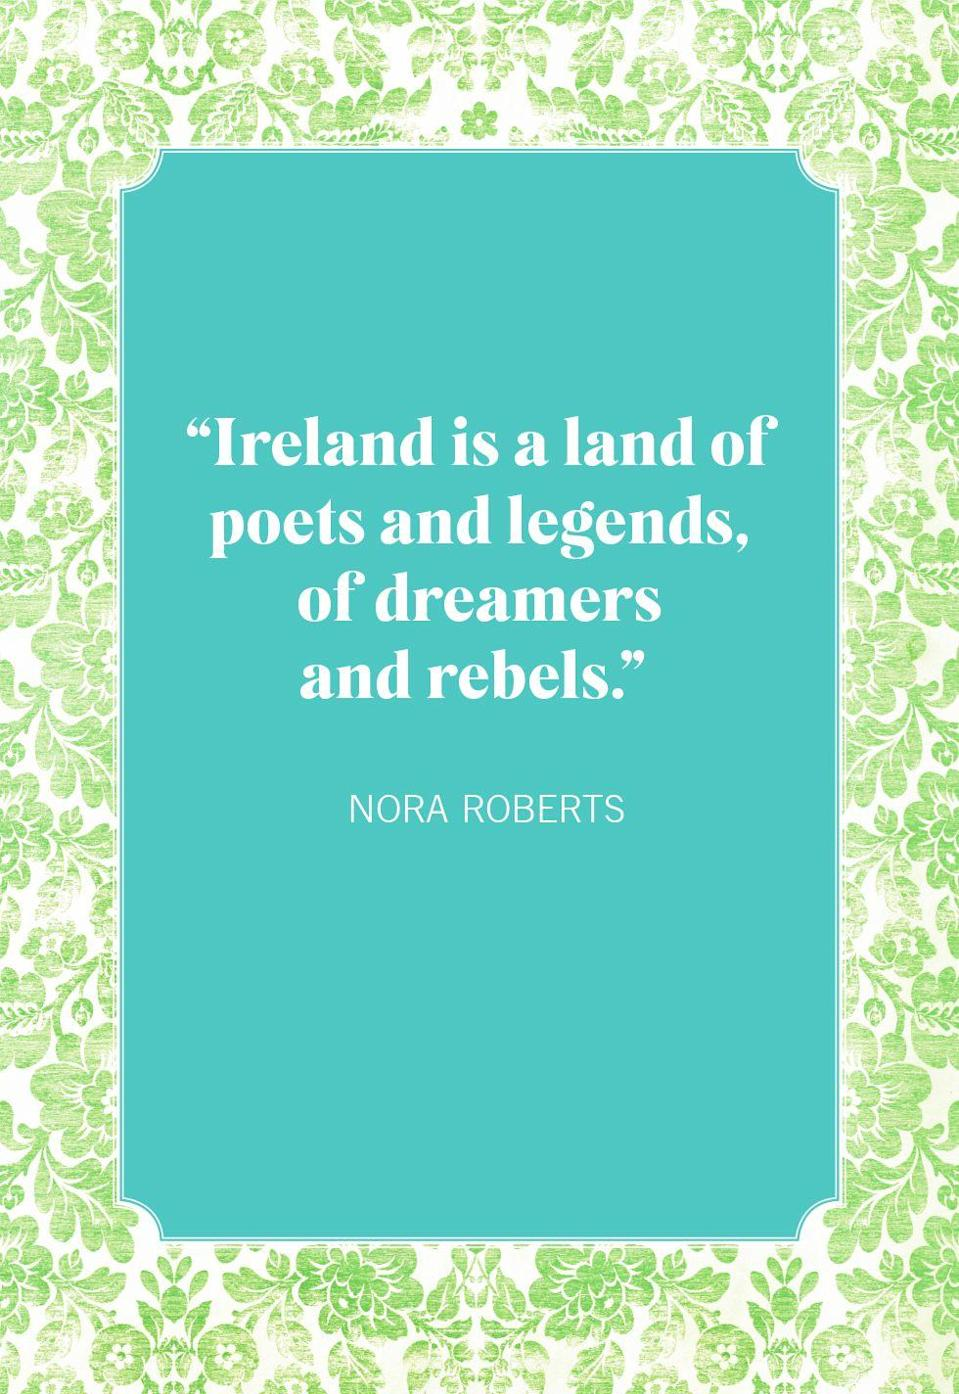 "<p>""Ireland is a land of poets and legends, of dreamers and rebels.""</p>"